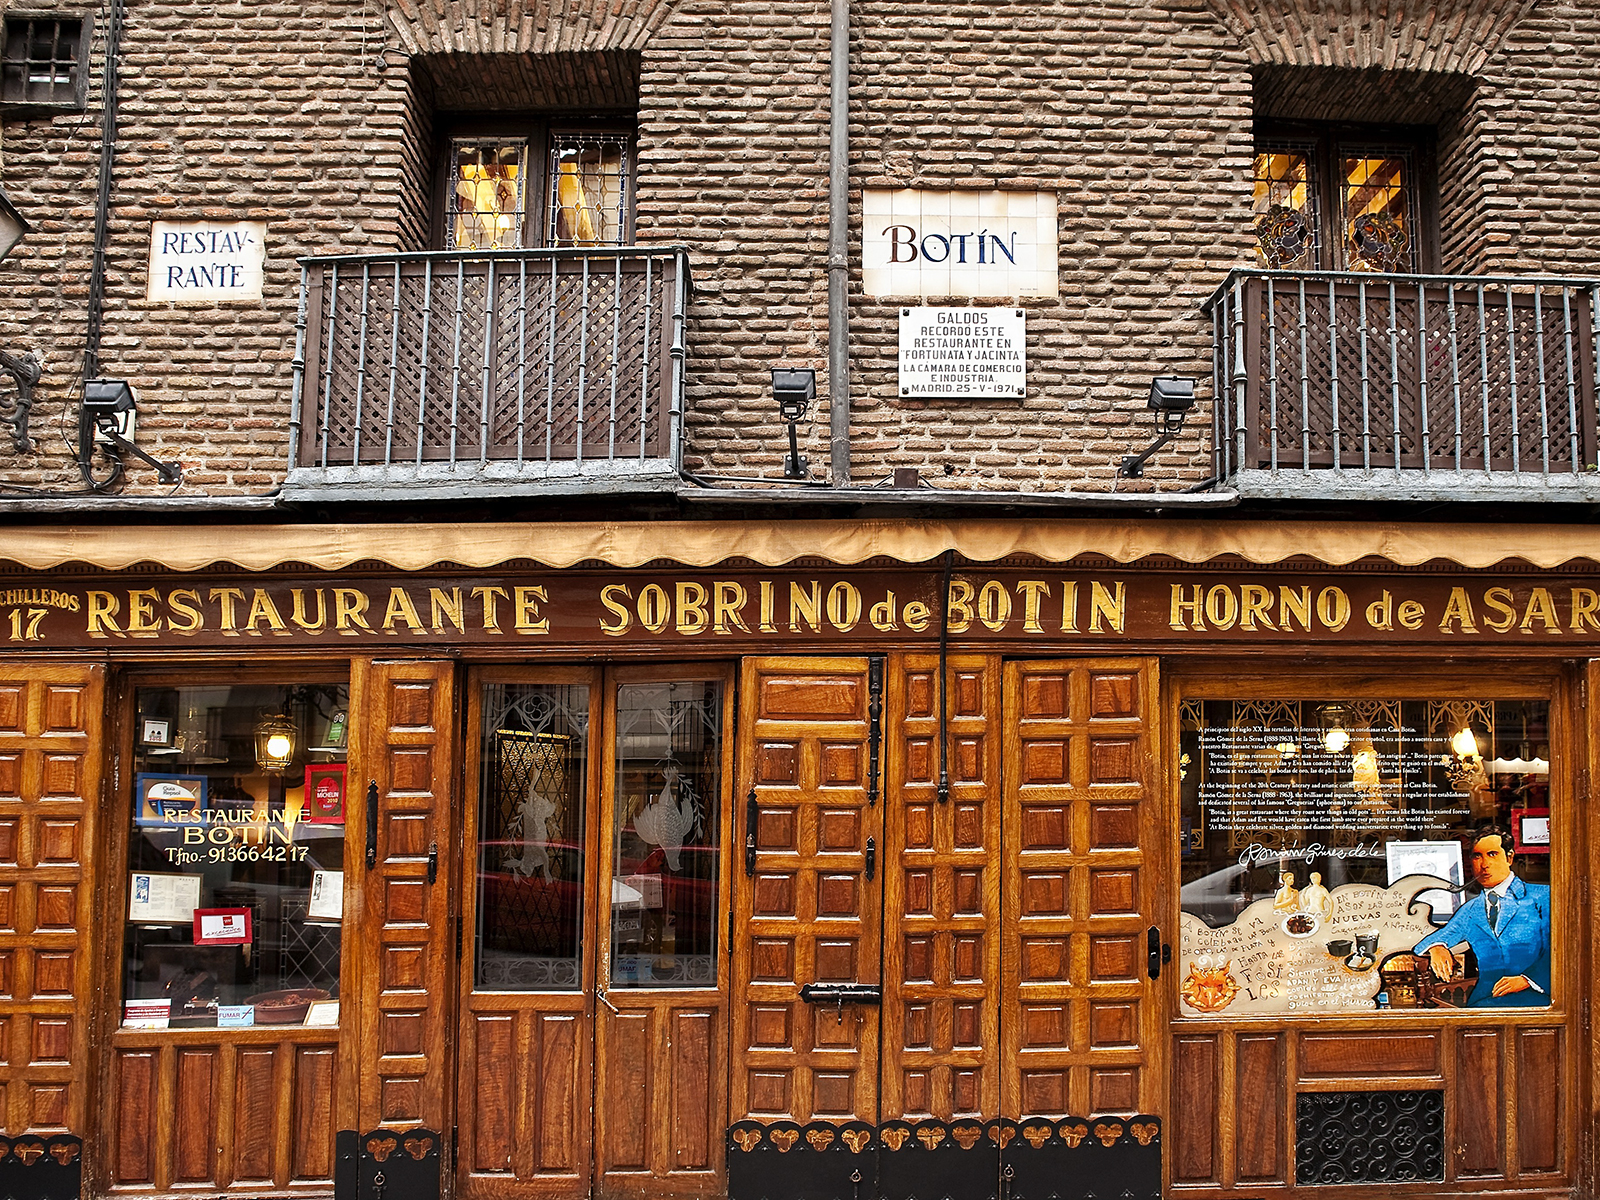 spain has the oldest restaurant in the world